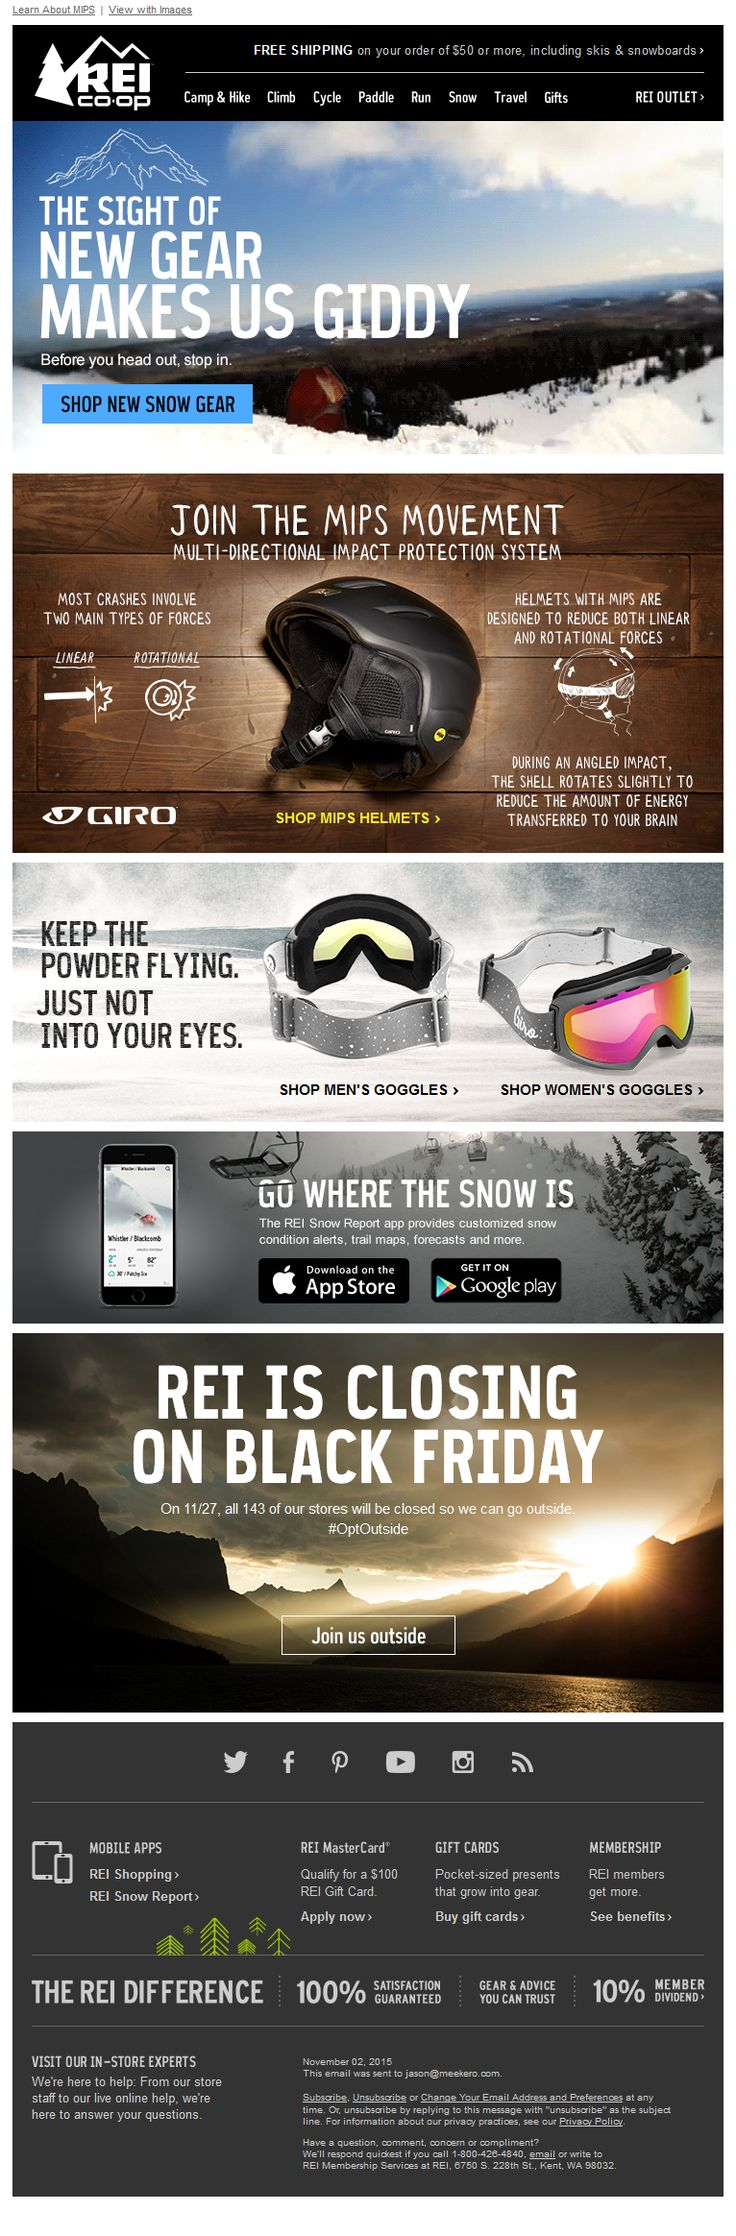 Animated section: Shared by Jason Meeker Show Plain Text Email Learn About MIPS | View with Images REI® CO-OP FREE SHIPPING on your order of $50 or more, including skis & snowboards> Camp & Hike Climb Cycle Paddle Run Snow Travel Gifts REI OUTLET THE SIGHT OF NEW GEAR MAKES US GIDDY – Before you …